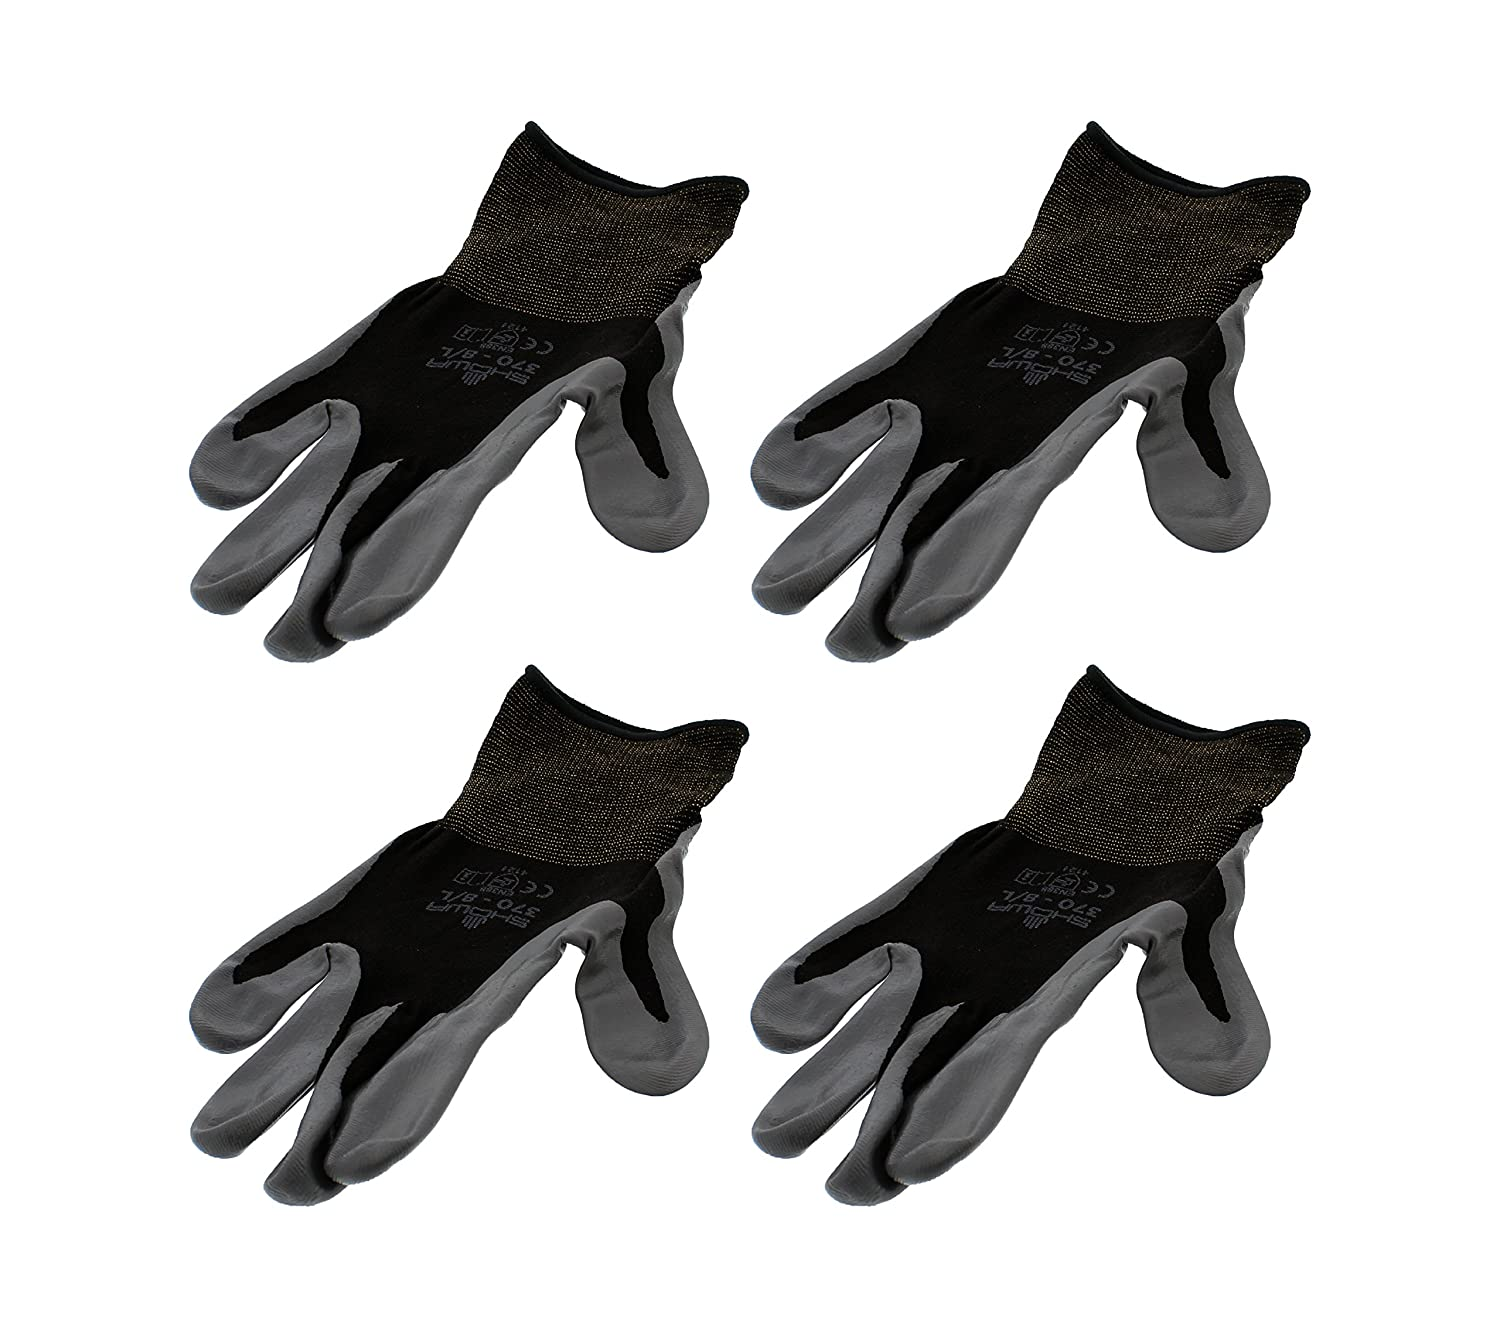 4 Pack Showa Atlas 370BBK Atlas Nitrile Tough Gloves - Large